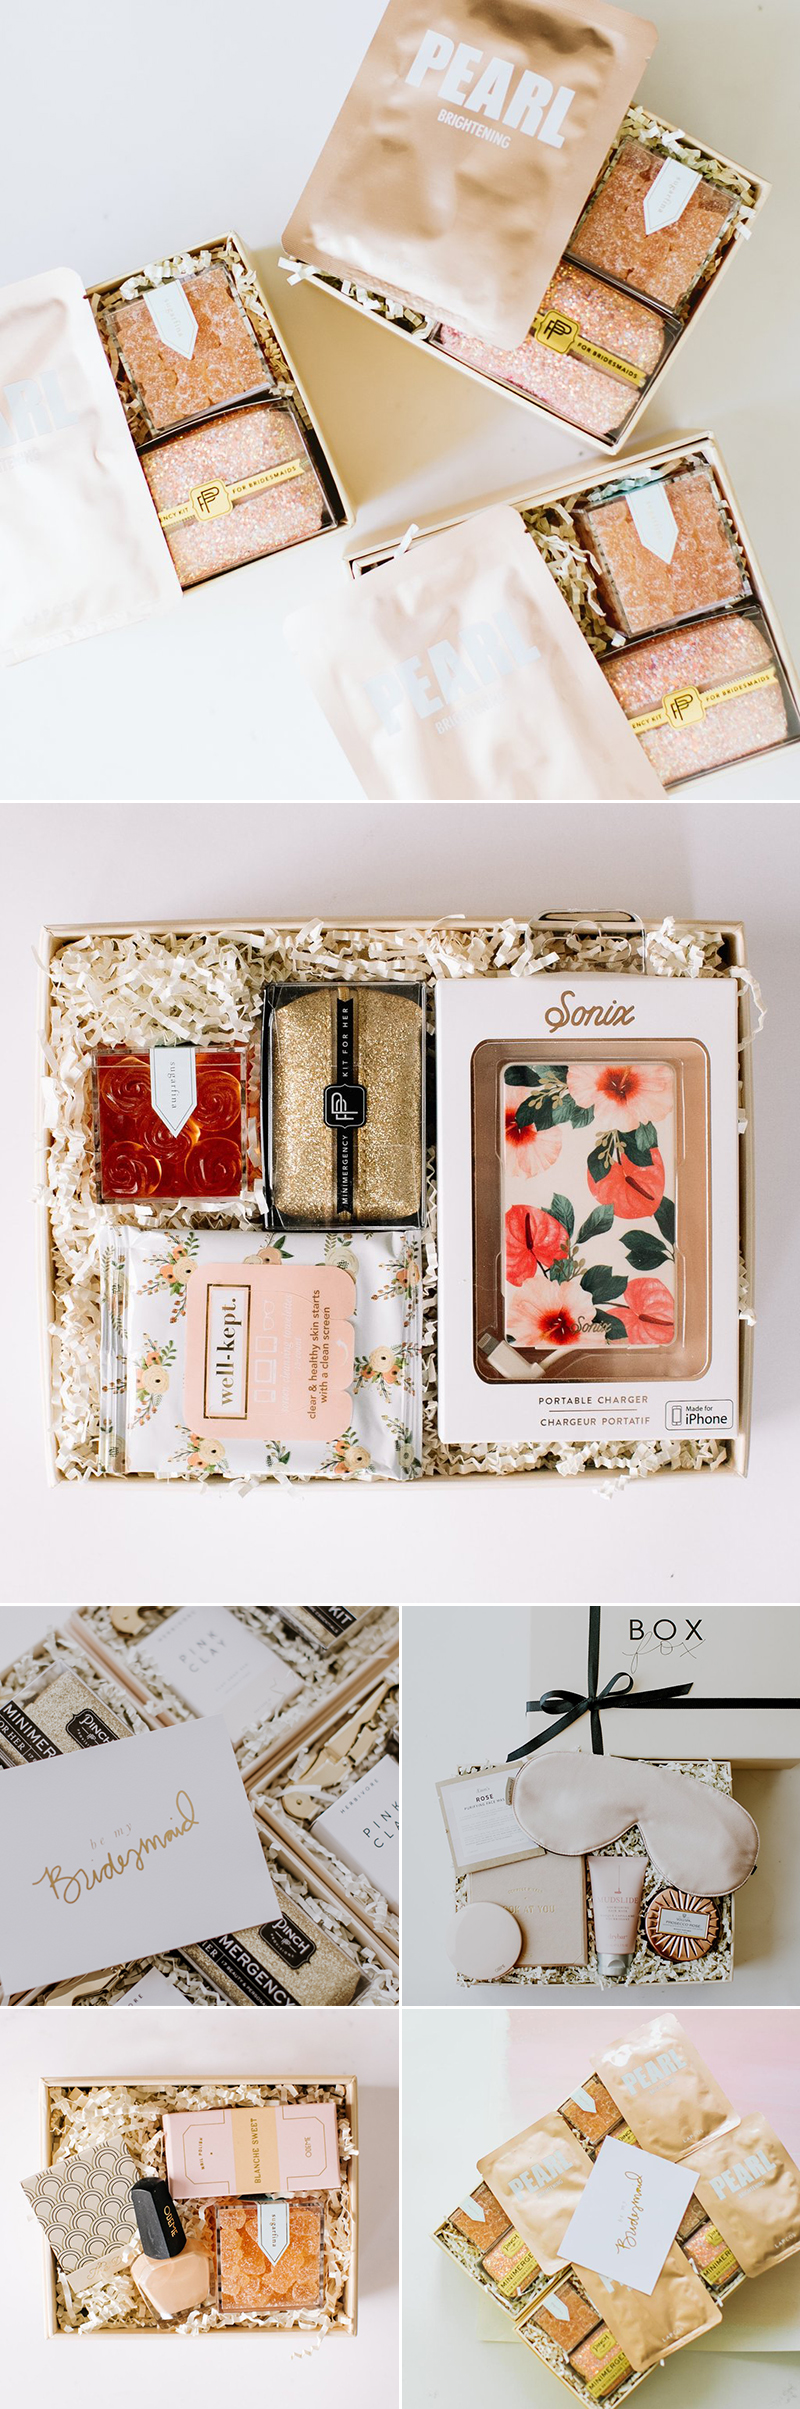 BOXFOX Curated Gift Boxes for Bridesmaids